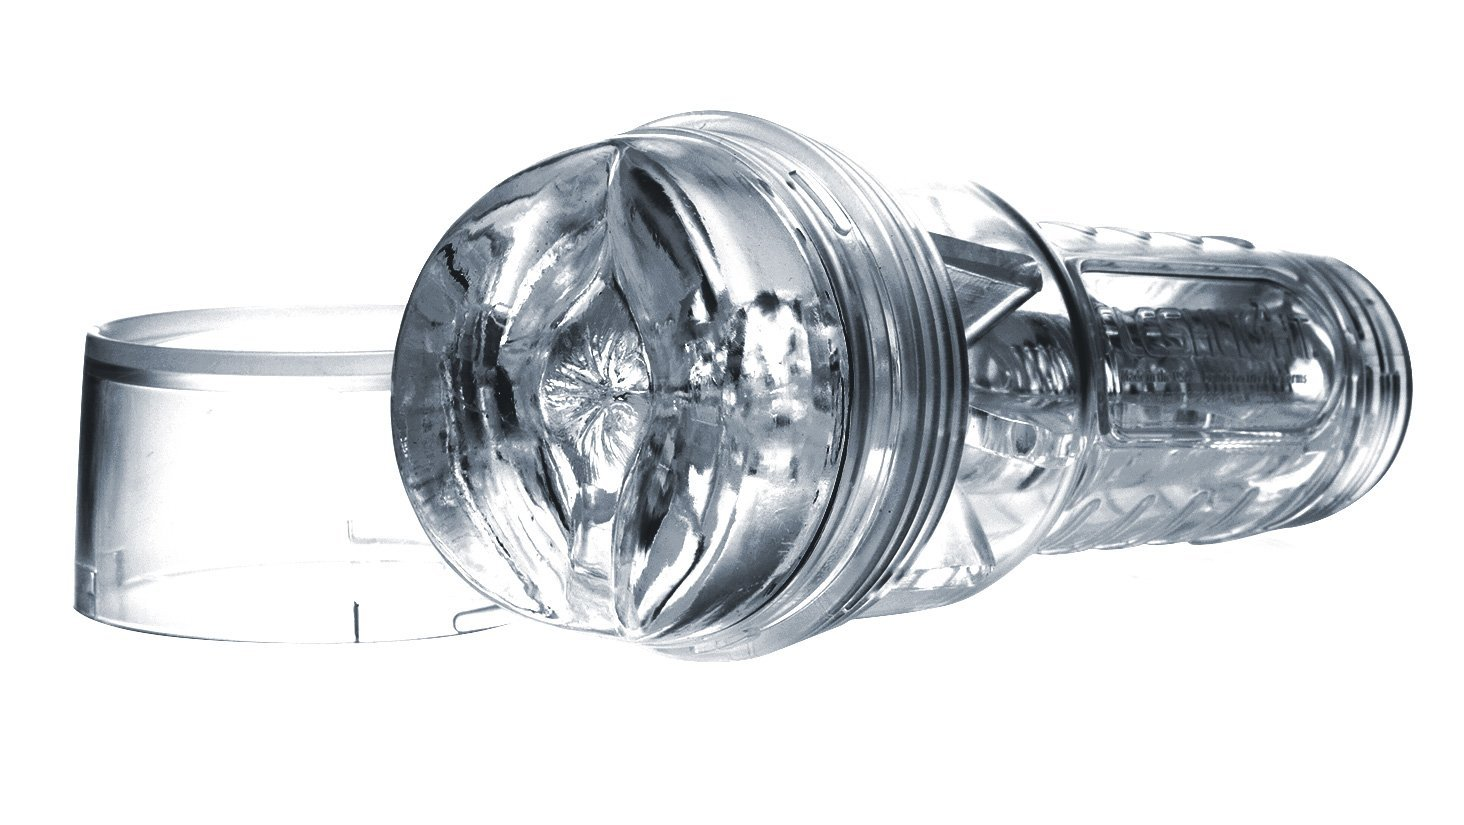 Fleshlight Fleshlight Ice Butt Crystal Masturbator by Fleshlight